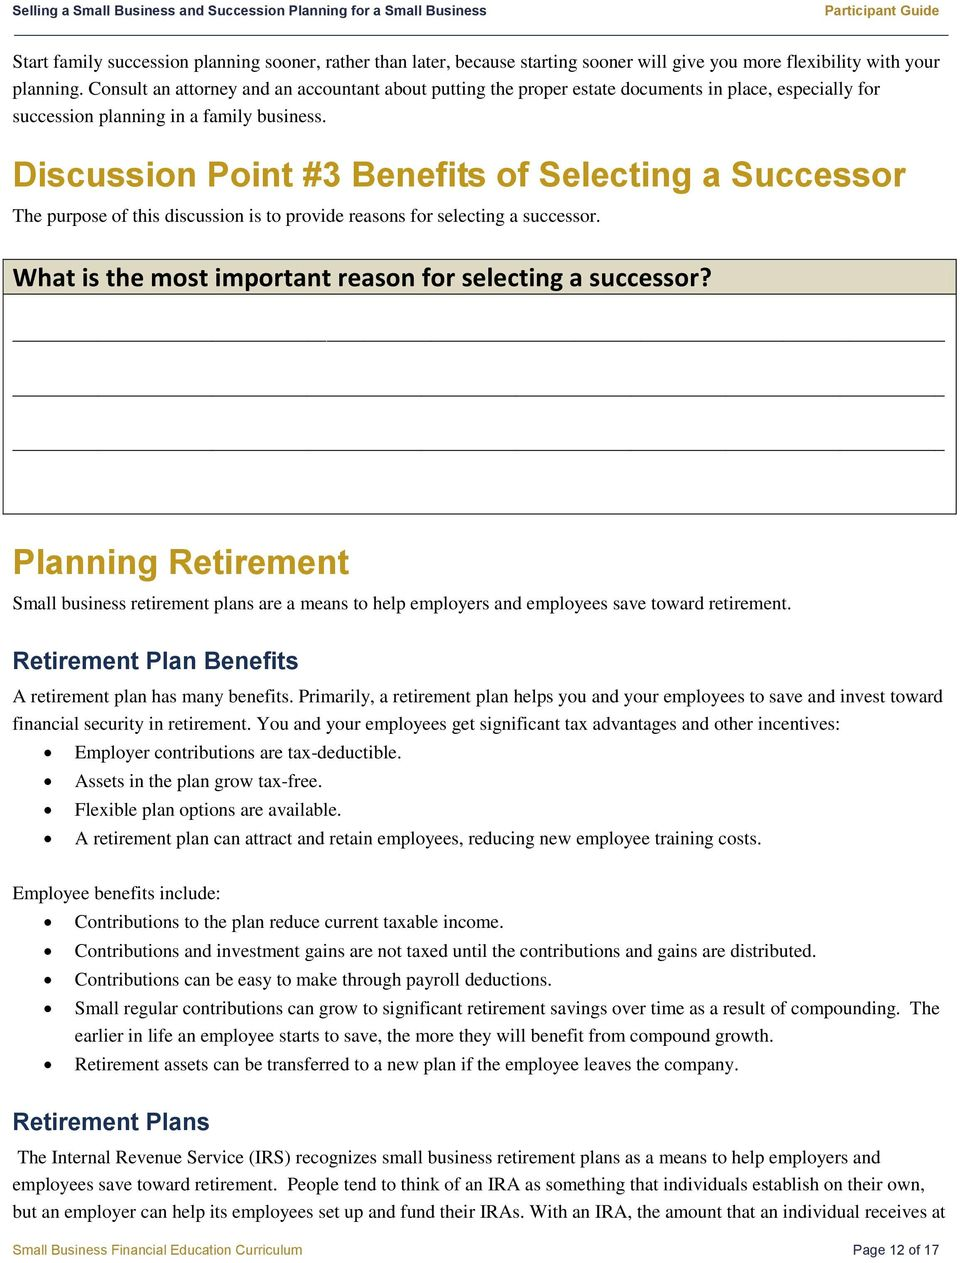 Discussion Point #3 Benefits of Selecting a Successor The purpose of this discussion is to provide reasons for selecting a successor. What is the most important reason for selecting a successor?